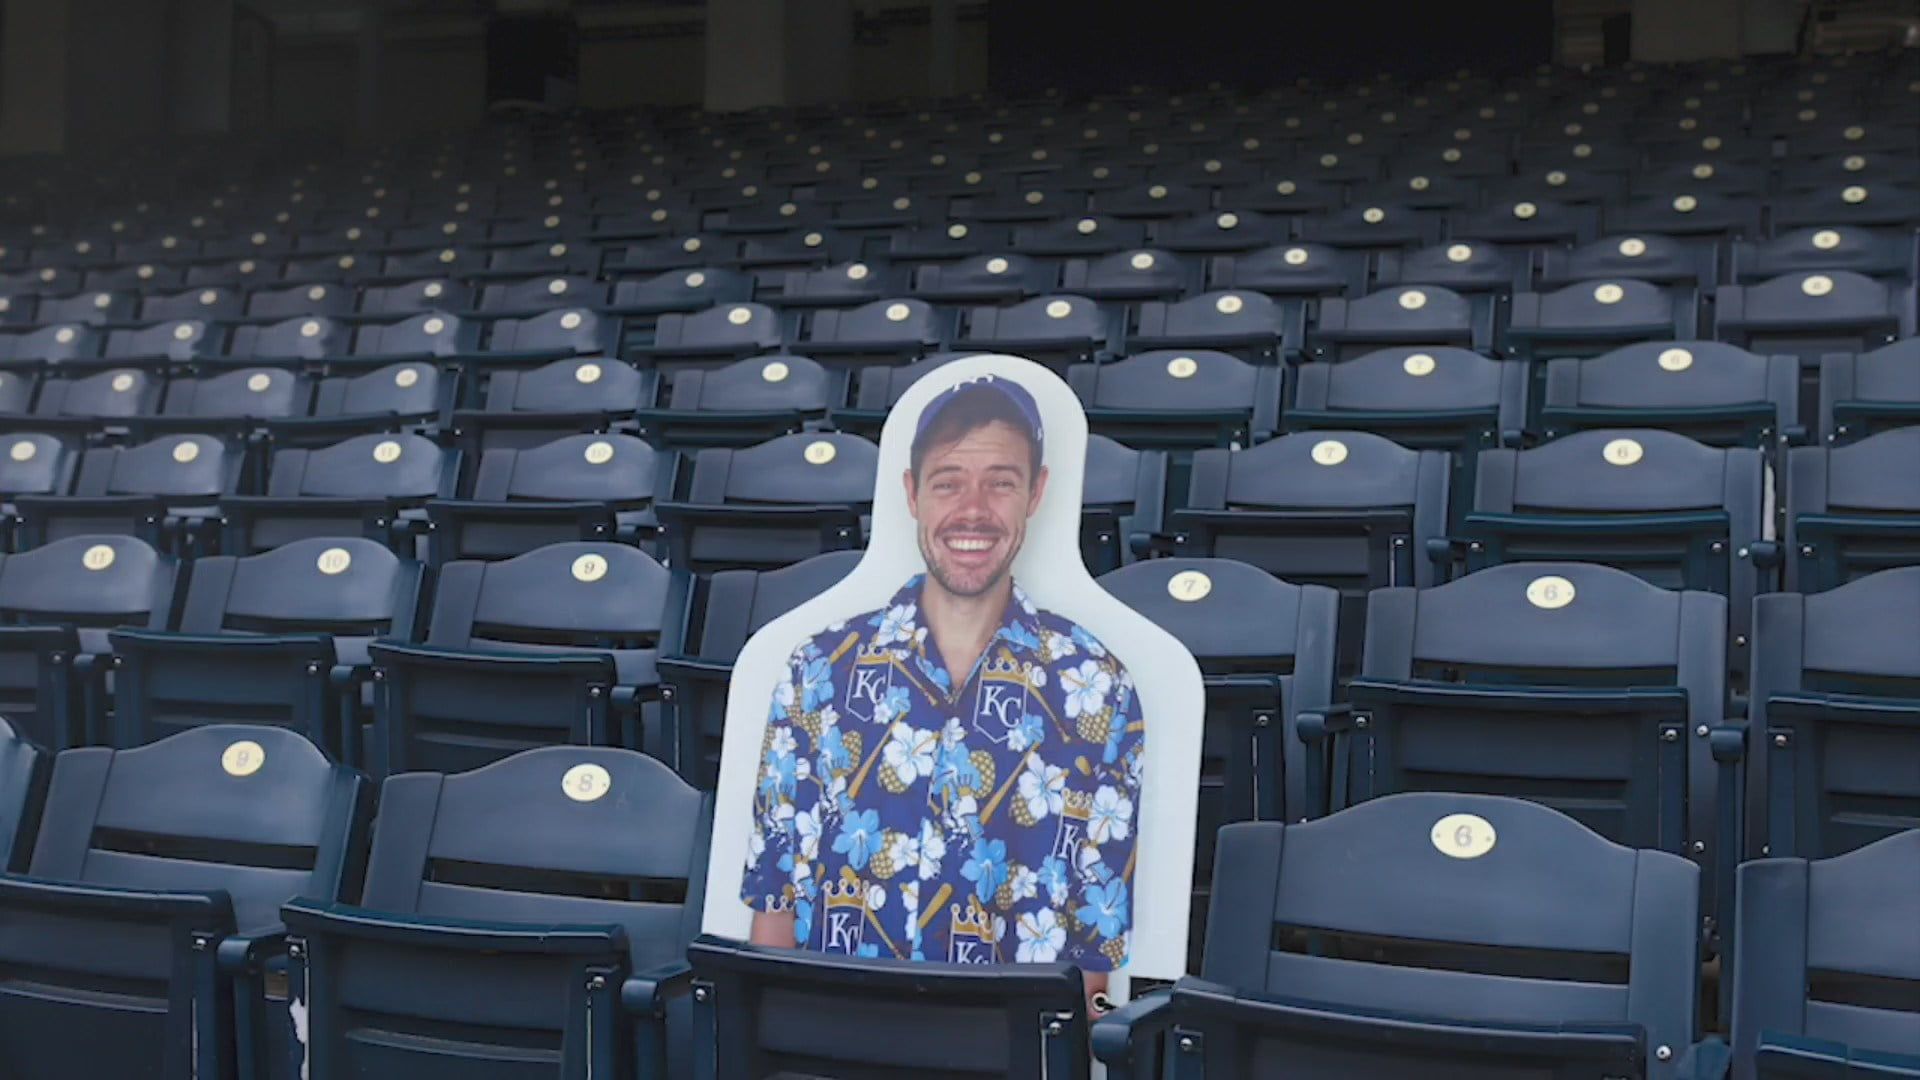 Kansas City Royals Putting Cutouts of Fans in Stands to Fill Seats During Games 4